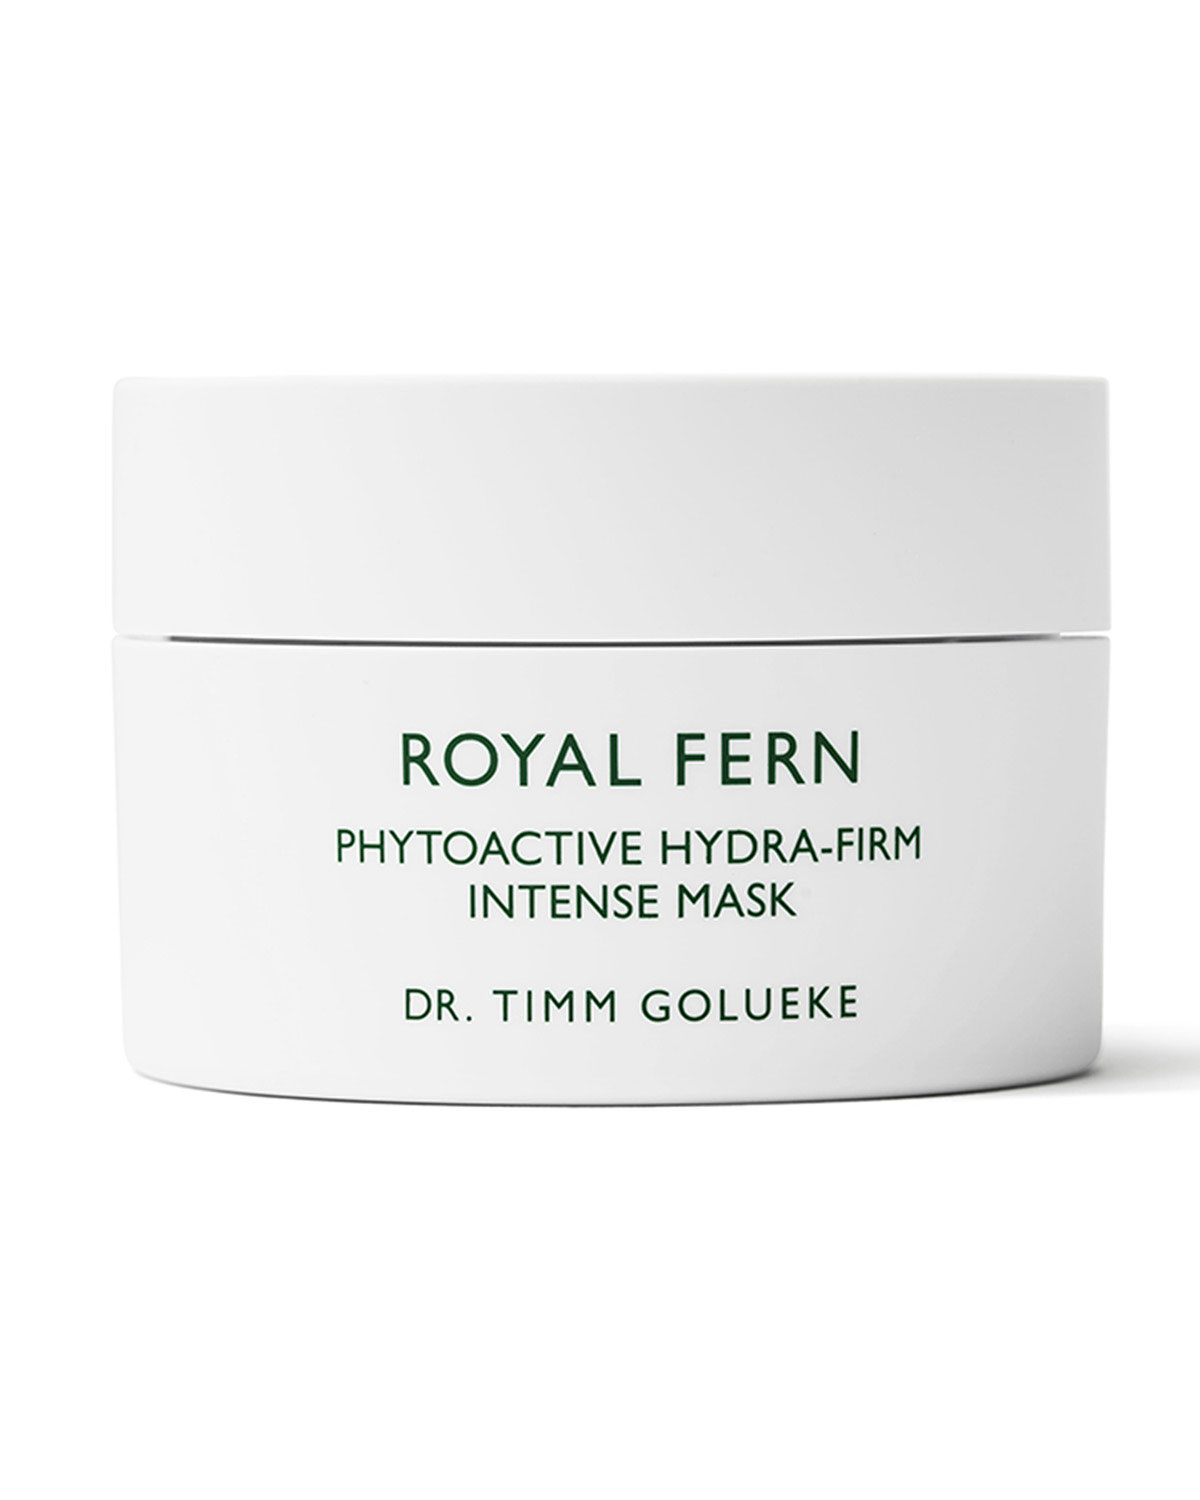 Royal Fern 1.7 oz. Phytoactive Hydra-Firm Intense Mask